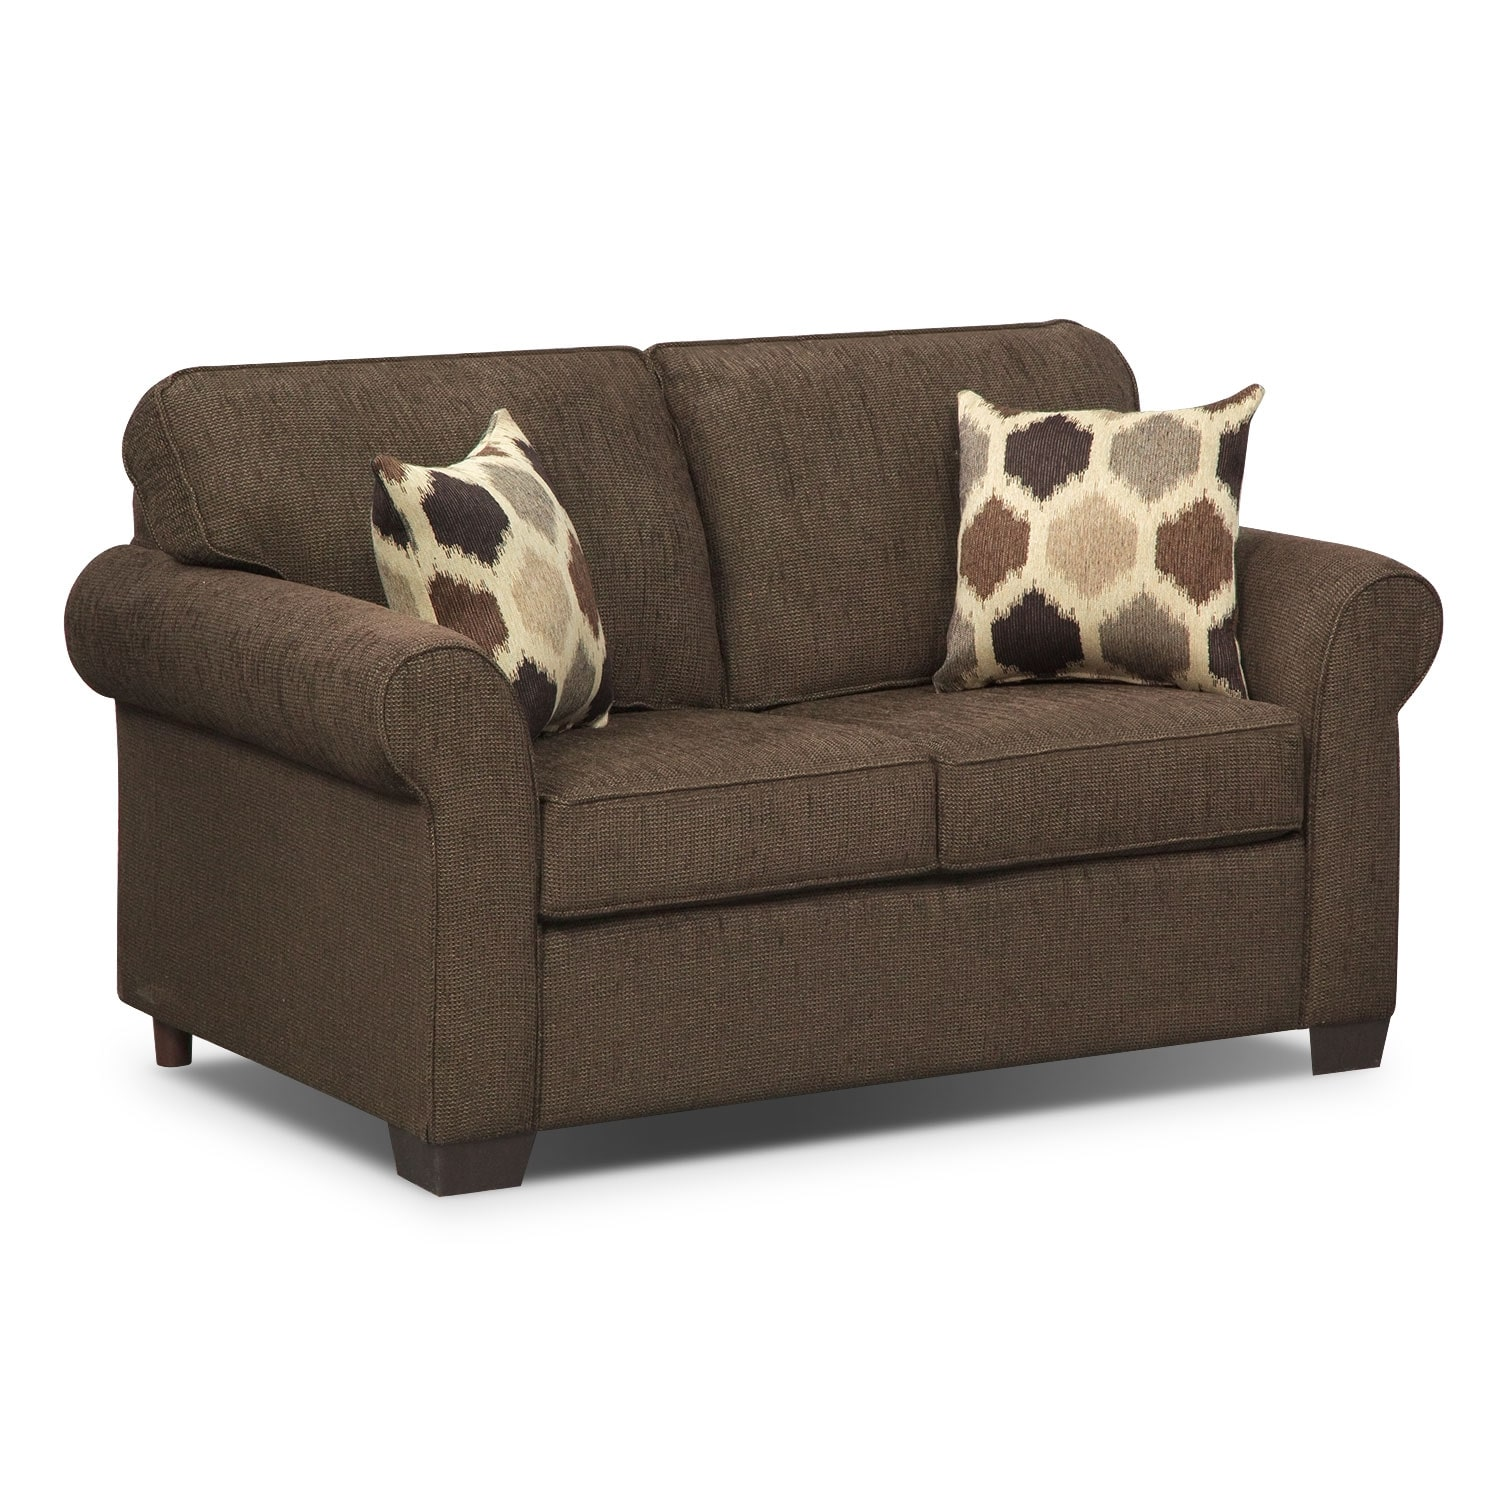 Fletcher ii twin memory foam sleeper sofa value city furniture Sofa sleeper loveseat